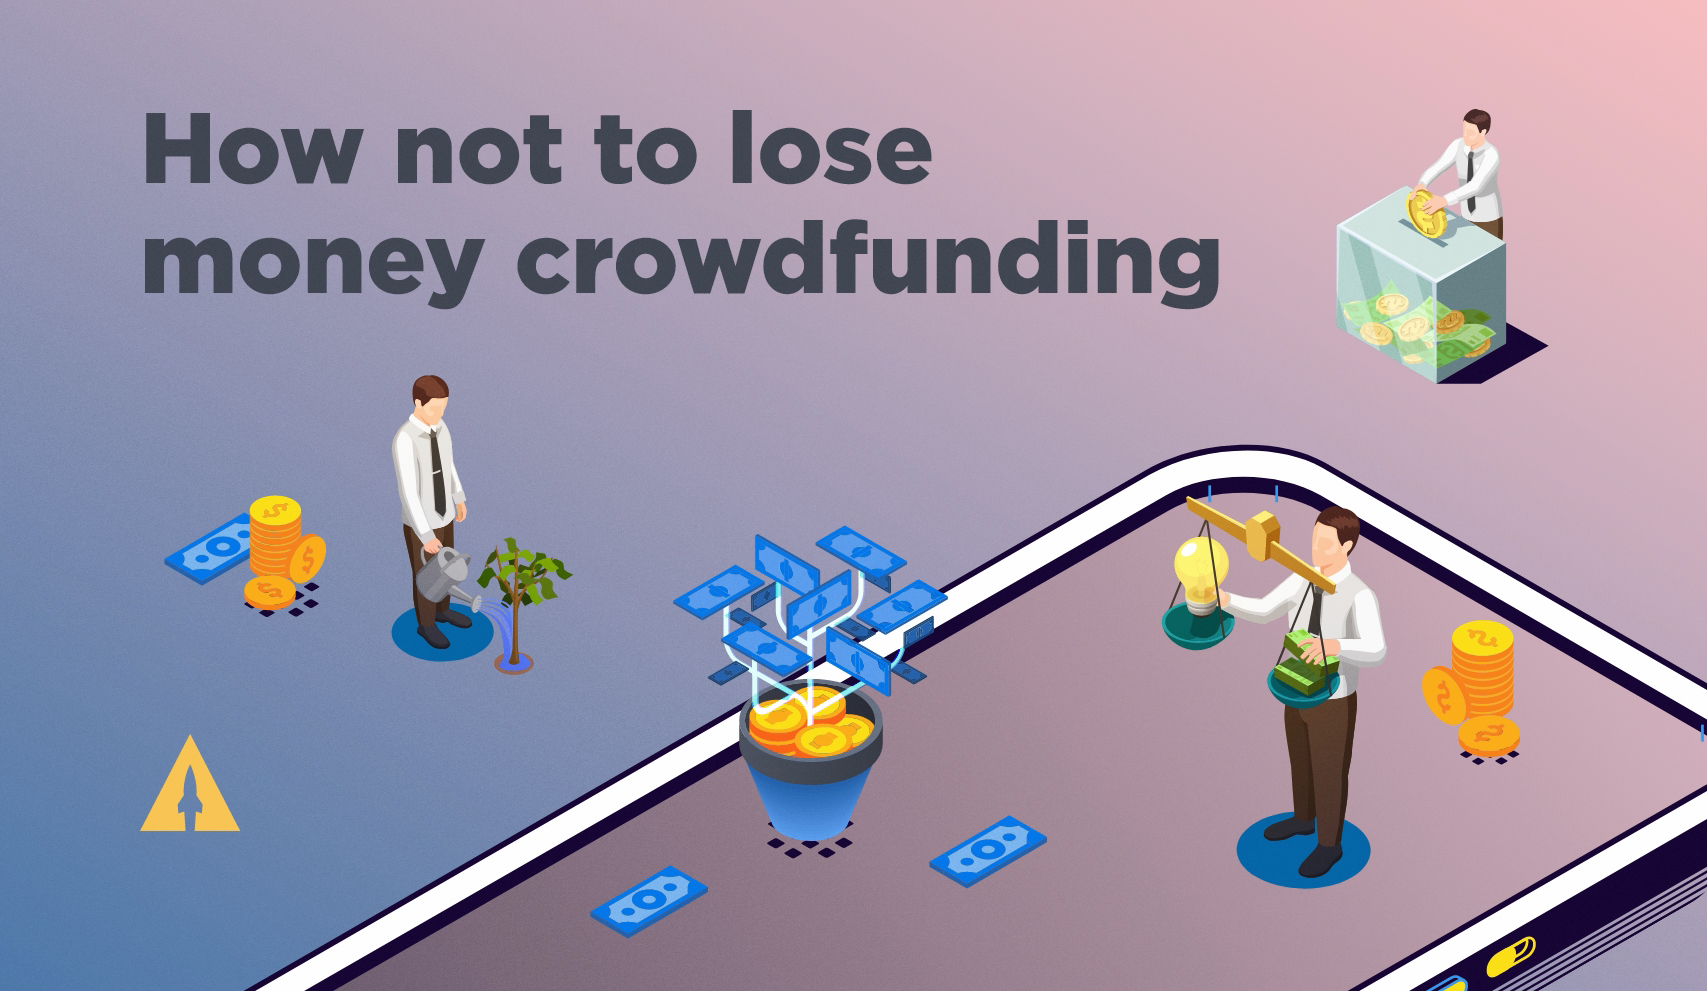 How not to lose money crowdfunding